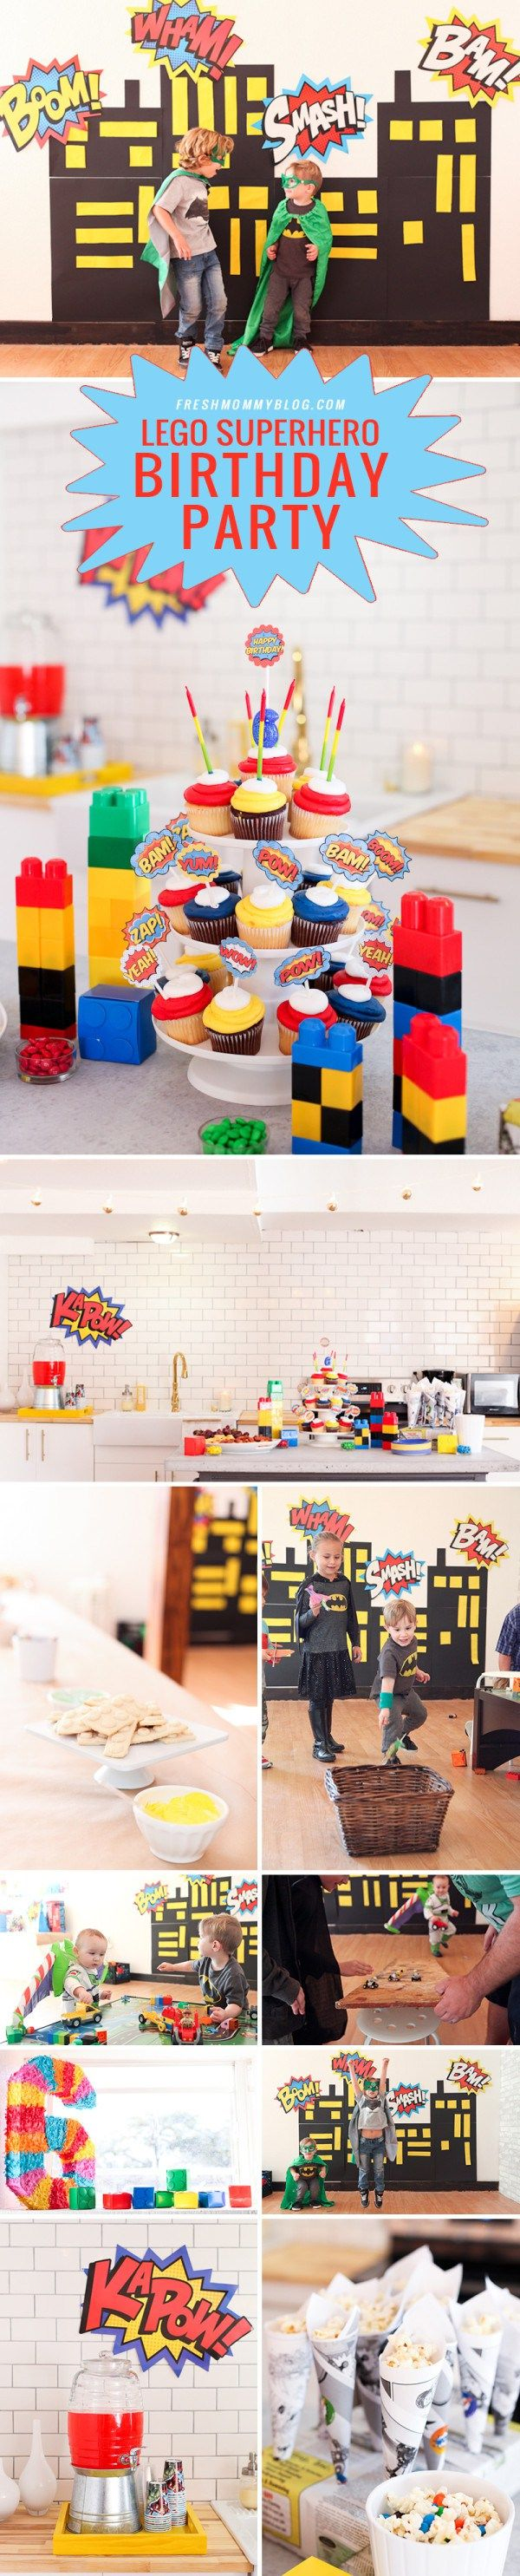 A bright and colorful Lego Superhero Birthday Party, with video games too! How to DIY this colorful and fun-filled birthday party, perfect for little boys... with lego car races, a superhero city backdrop, decorate your own lego sugar cookies and more superhero lego fun!!